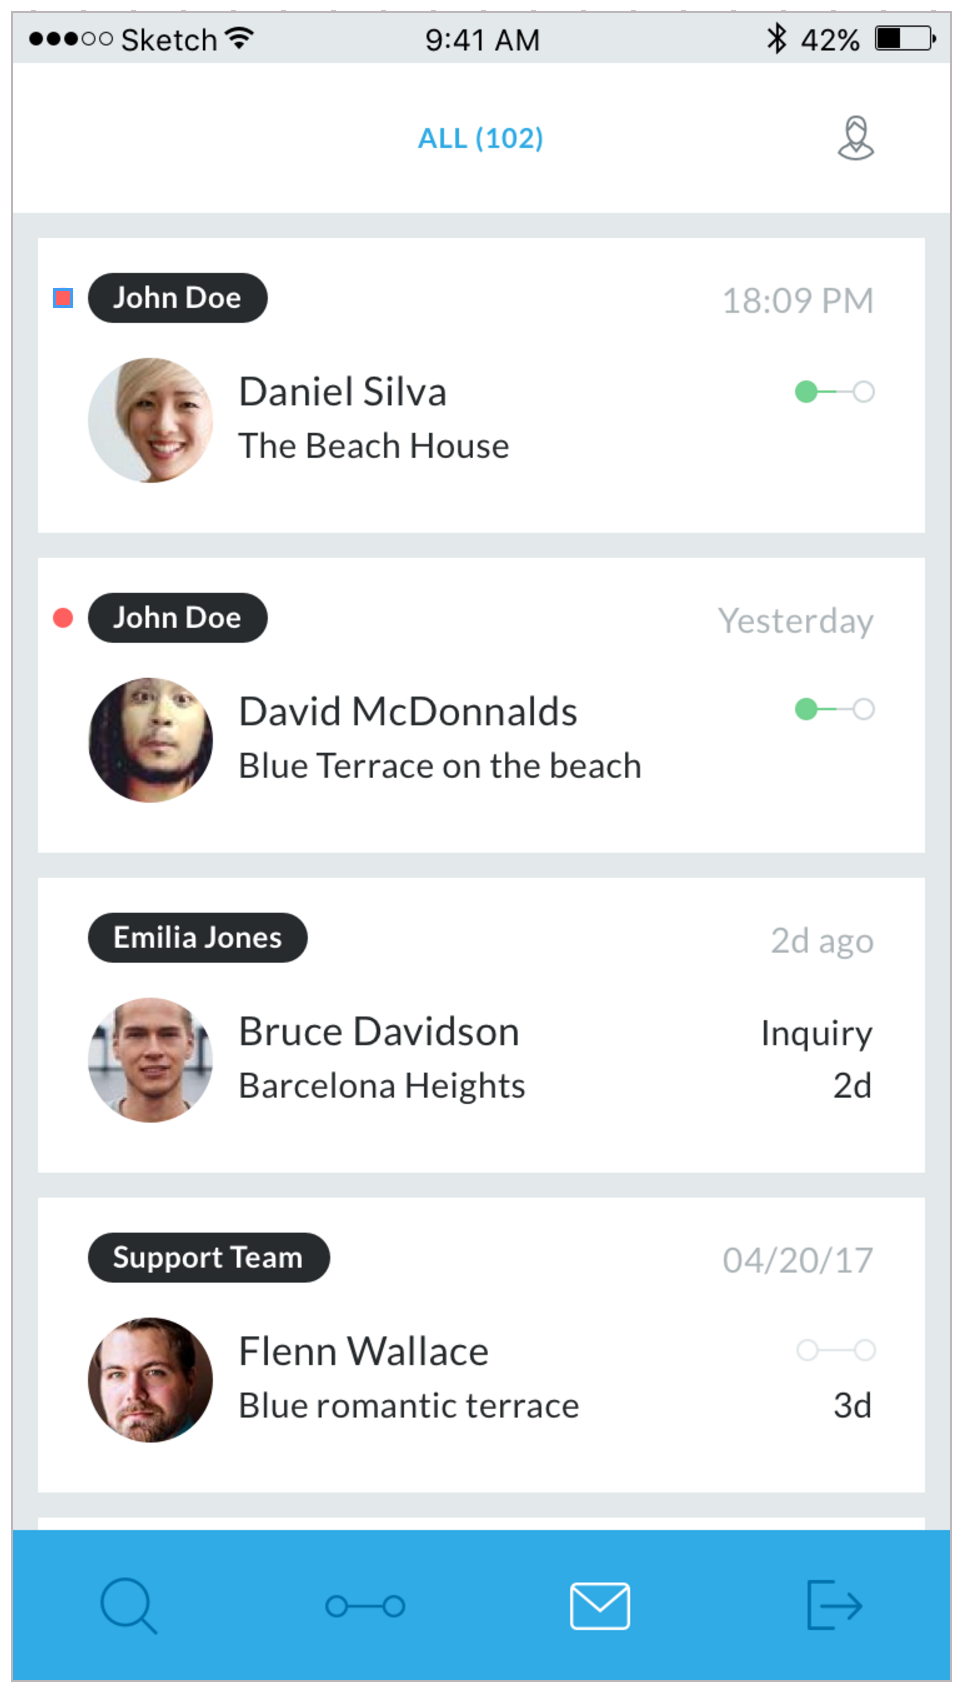 Guesty Software - The inbox shows all conversations with guests